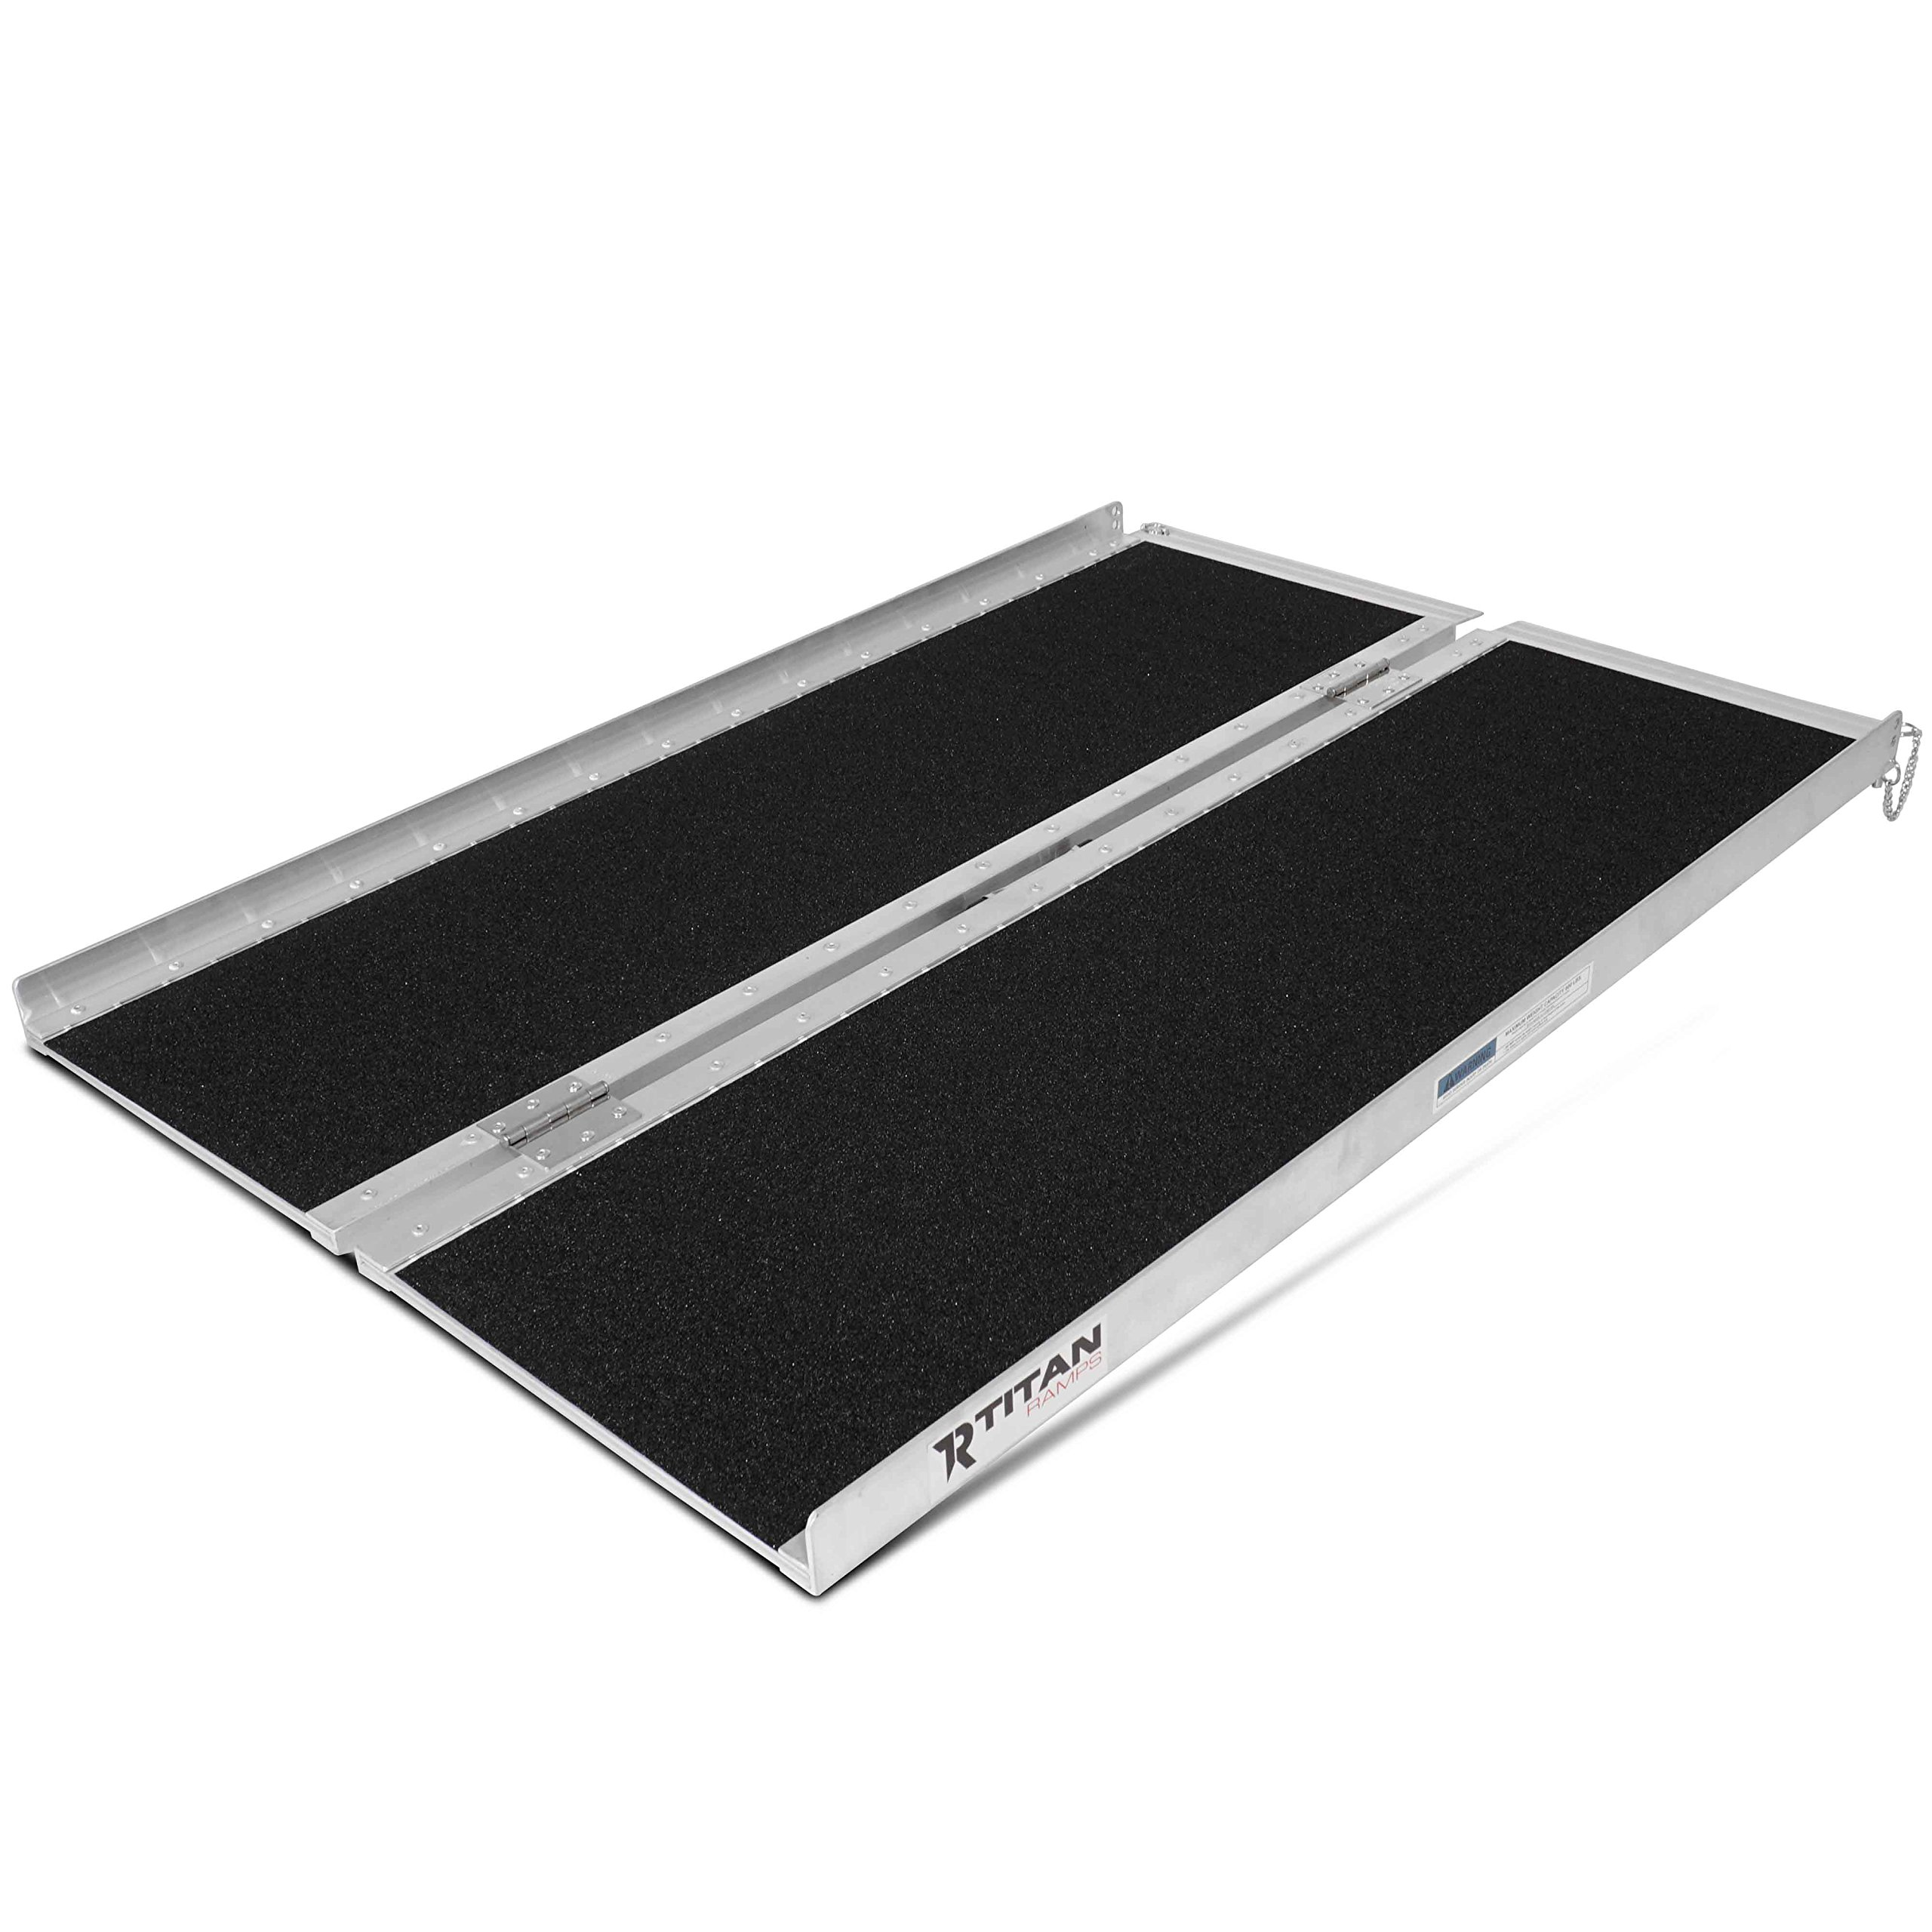 Titan Ramps 4' x 30'' Non-Skid Aluminum Briefcase Traction Ramp Folding Portable by Titan Ramps